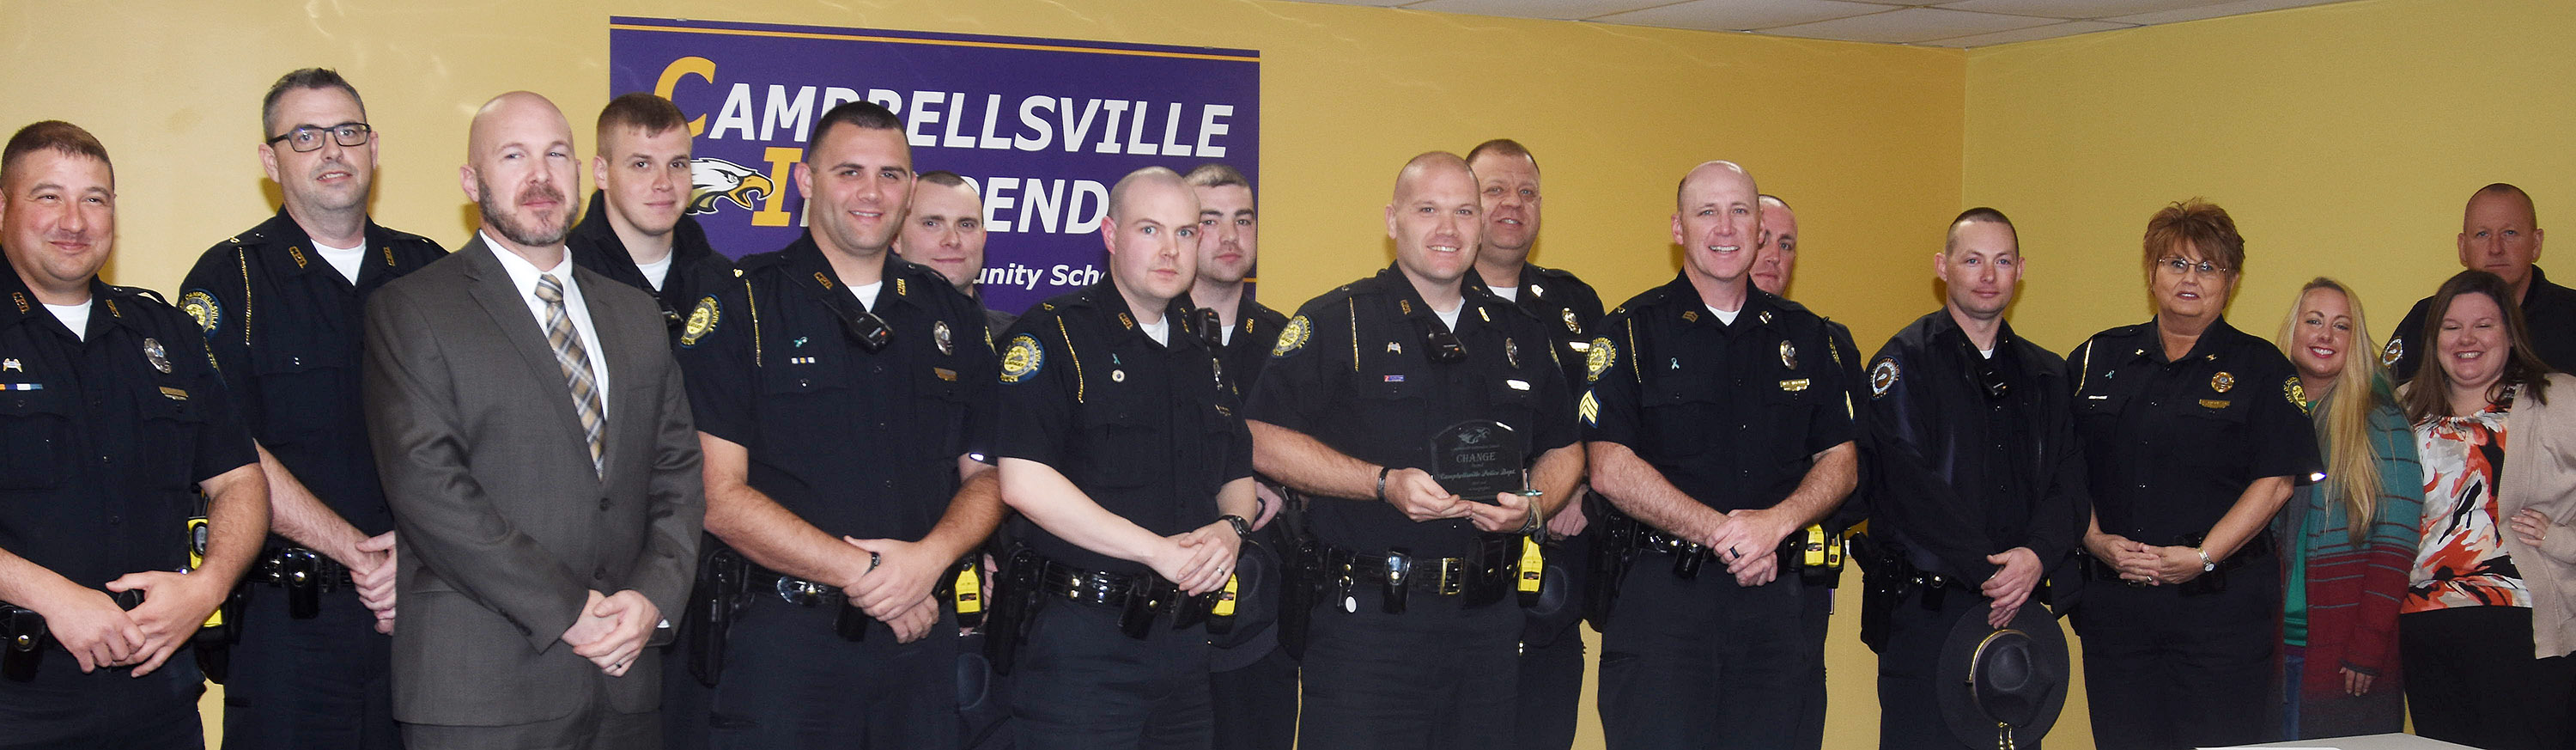 Campbellsville Independent Schools Superintendent Kirby Smith honored community partner Campbellsville Police with the community Change Award.